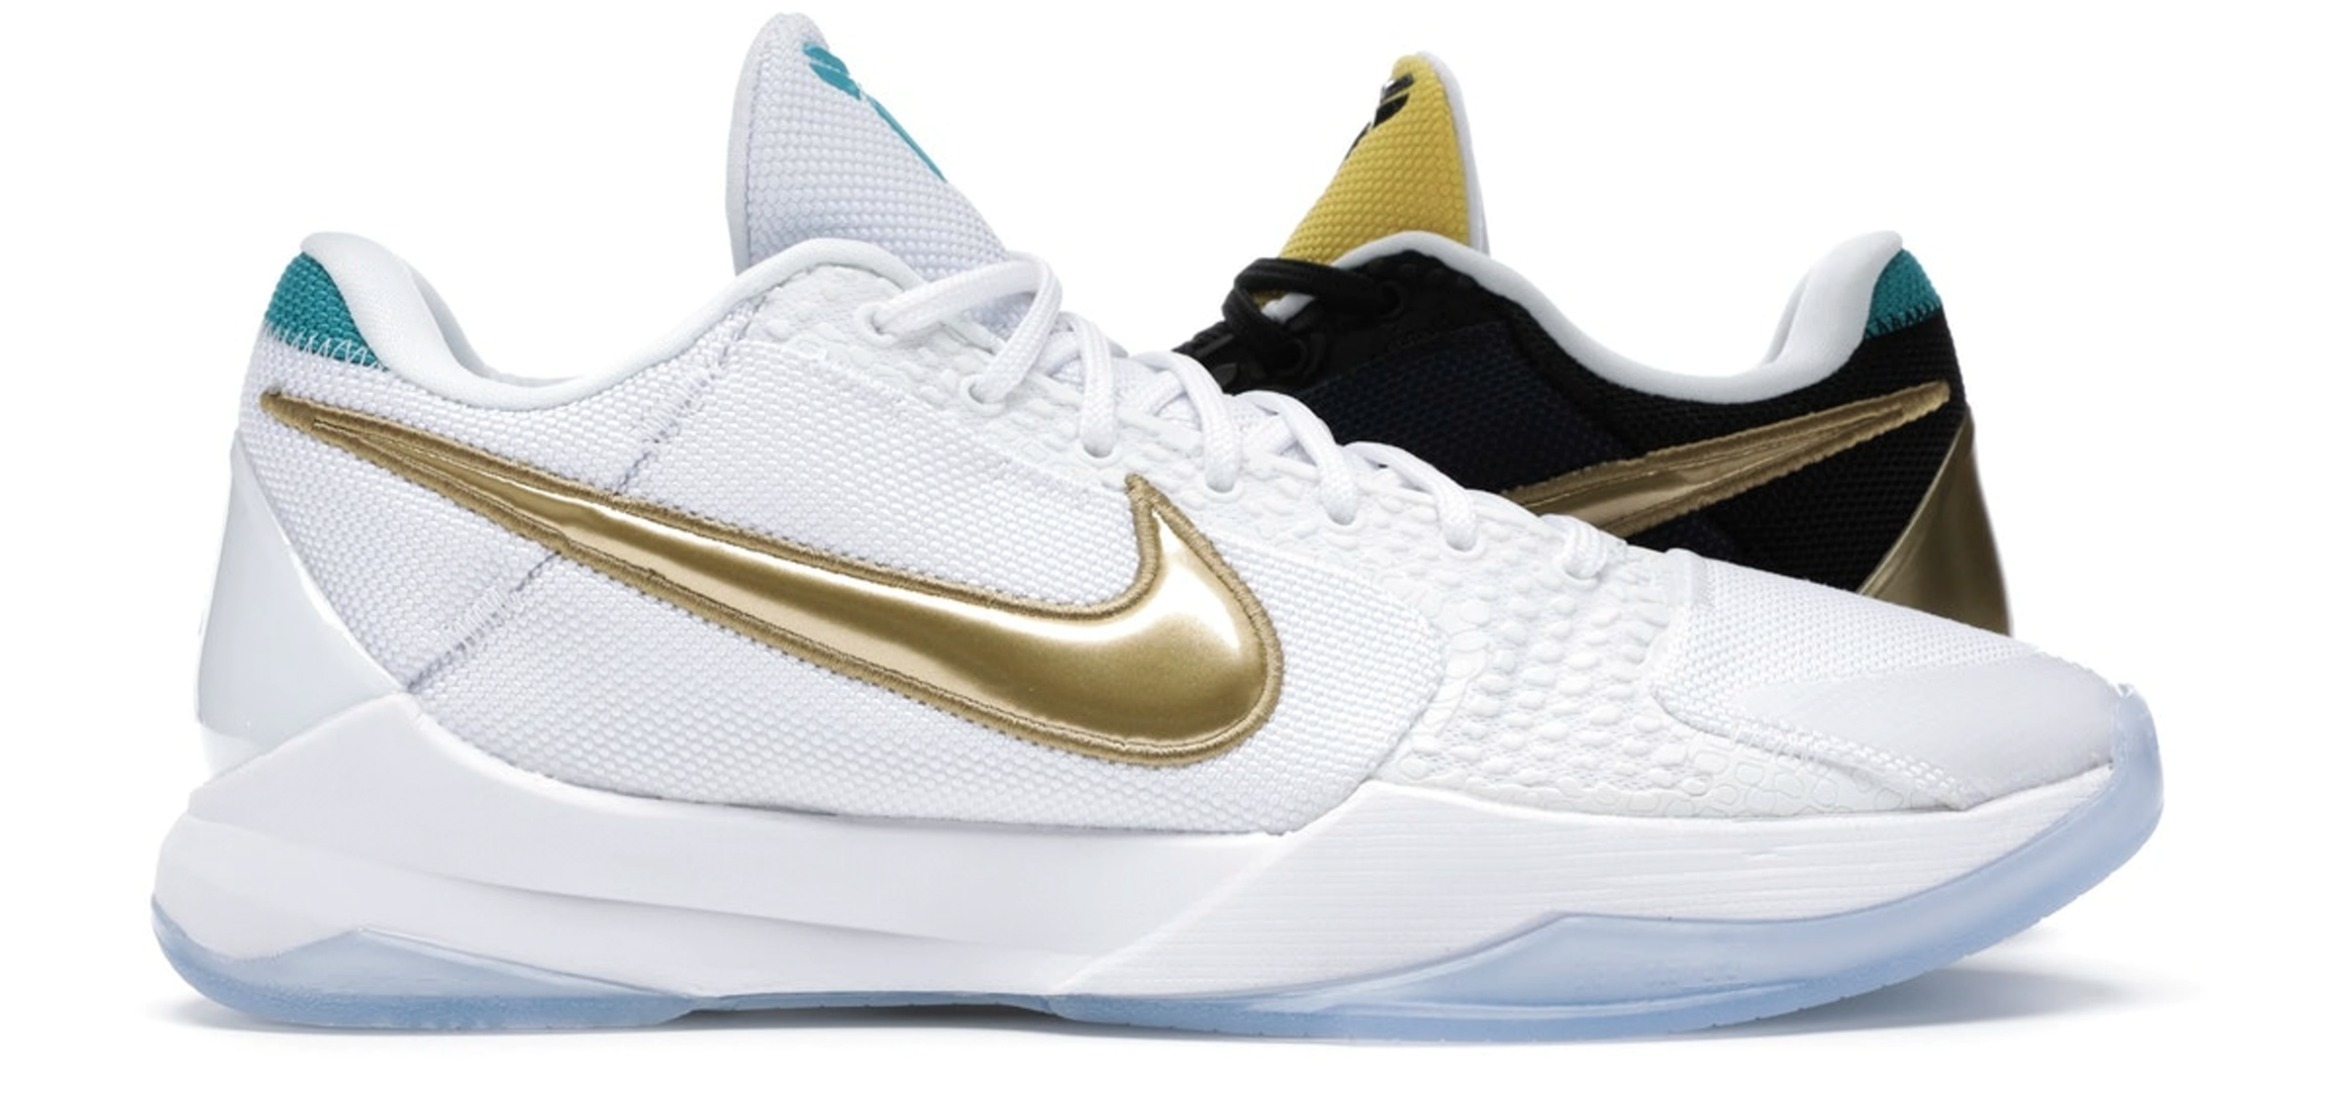 20 SS Nike Kobe 5 Protro Undefeated What If Pack (Nike/スニーカー) 69143272